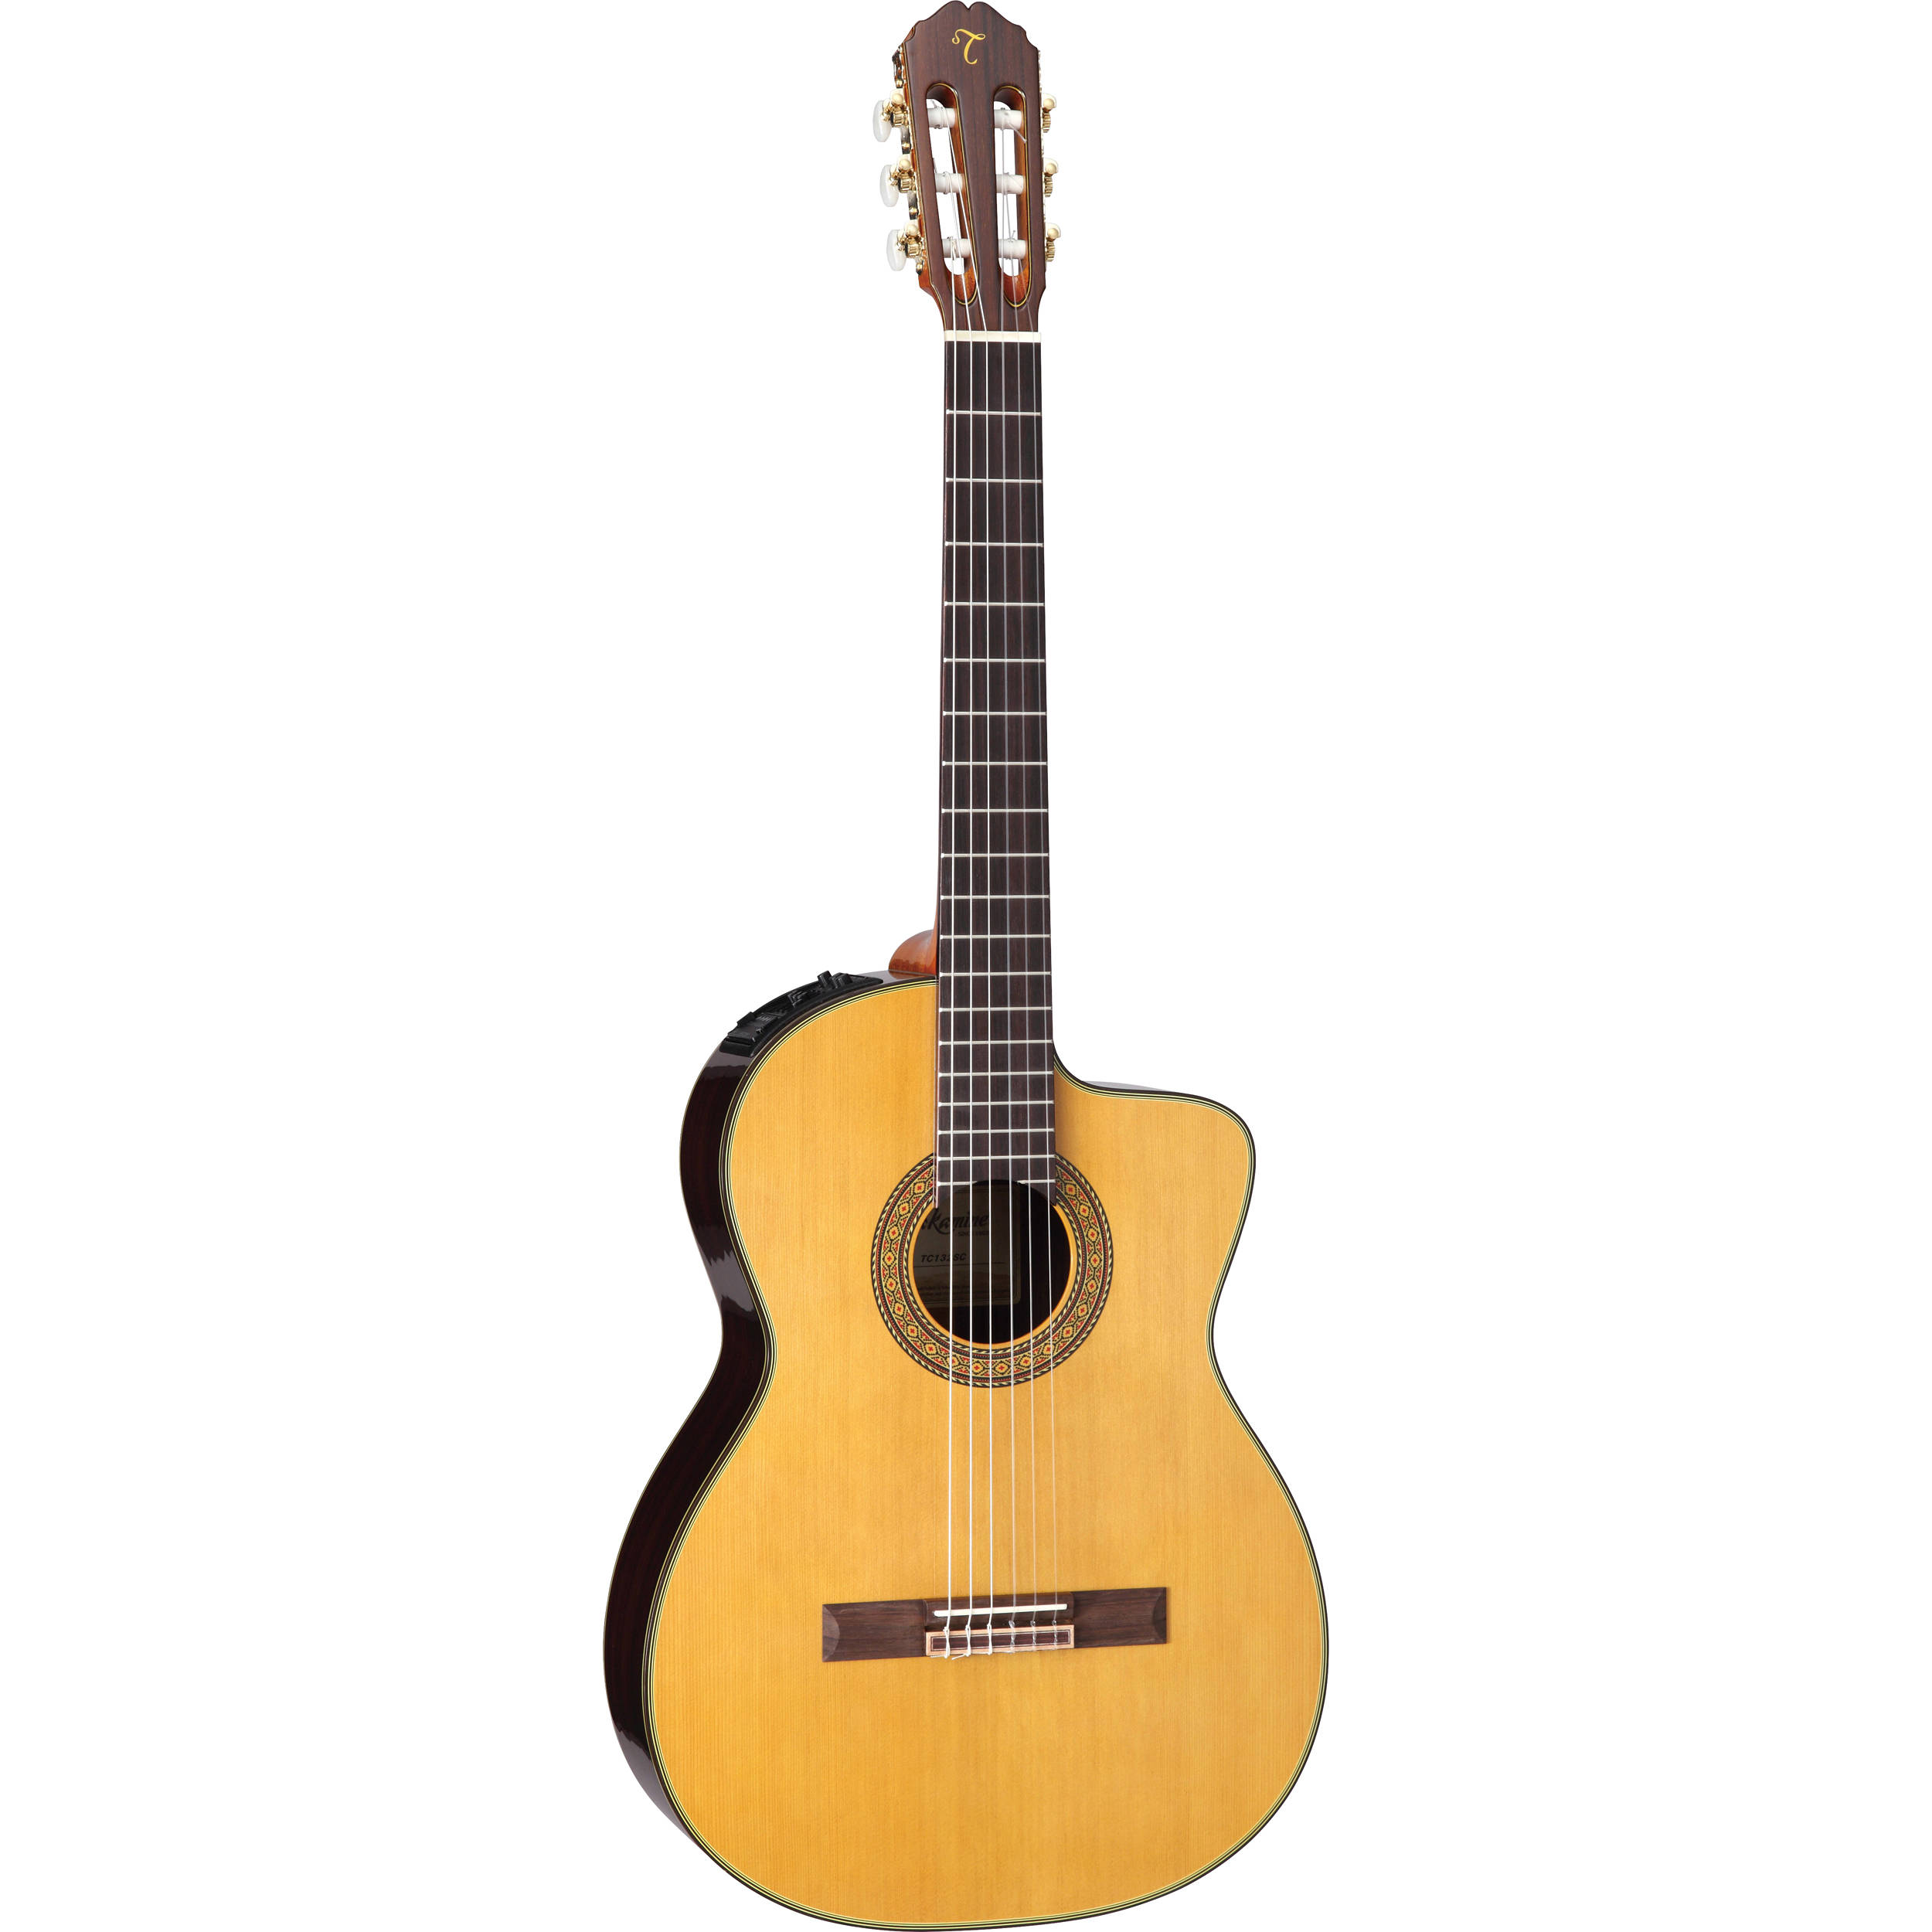 takamine tc132sc nylon string classical guitar with case tc132sc. Black Bedroom Furniture Sets. Home Design Ideas